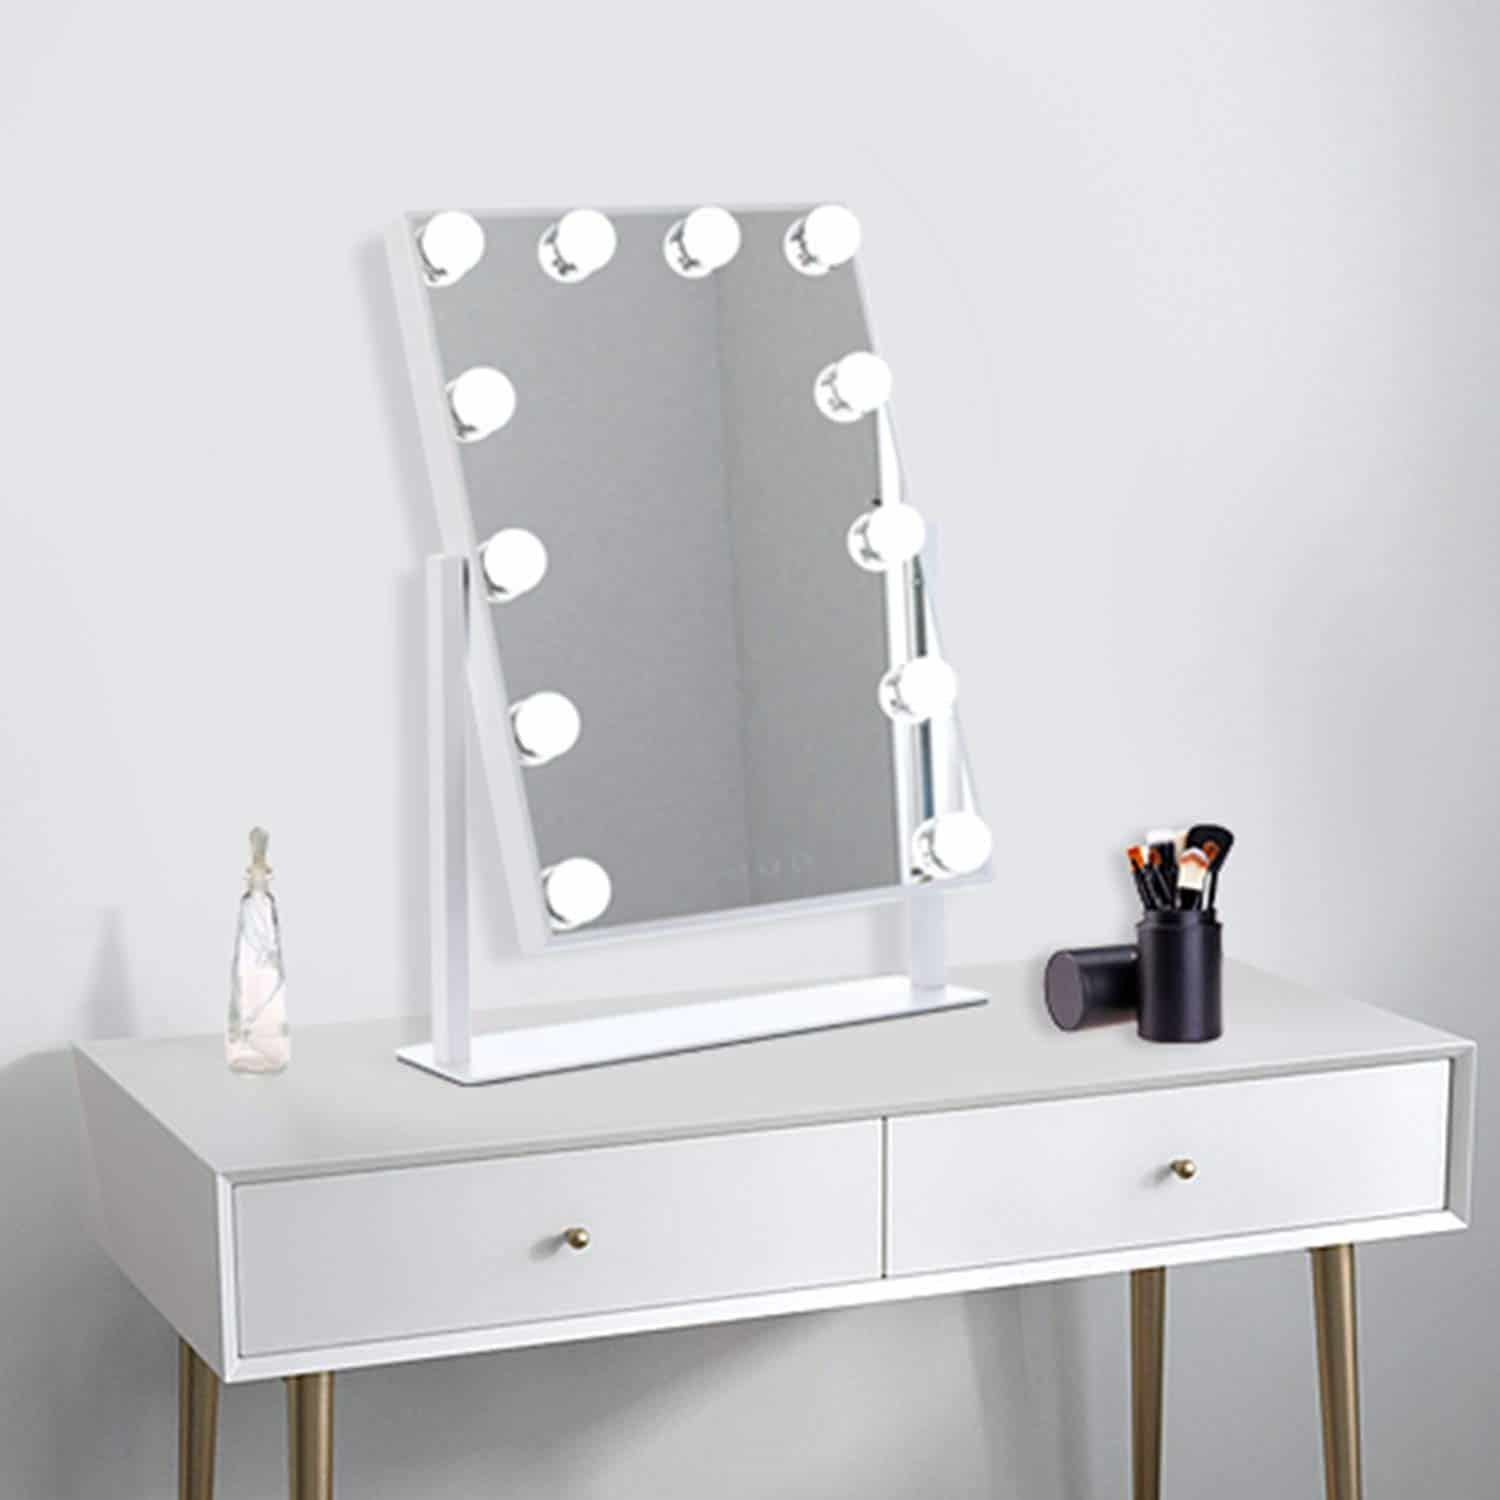 Top 10 Best Makeup Mirrors In 2020 Reviews Buyer S Guide